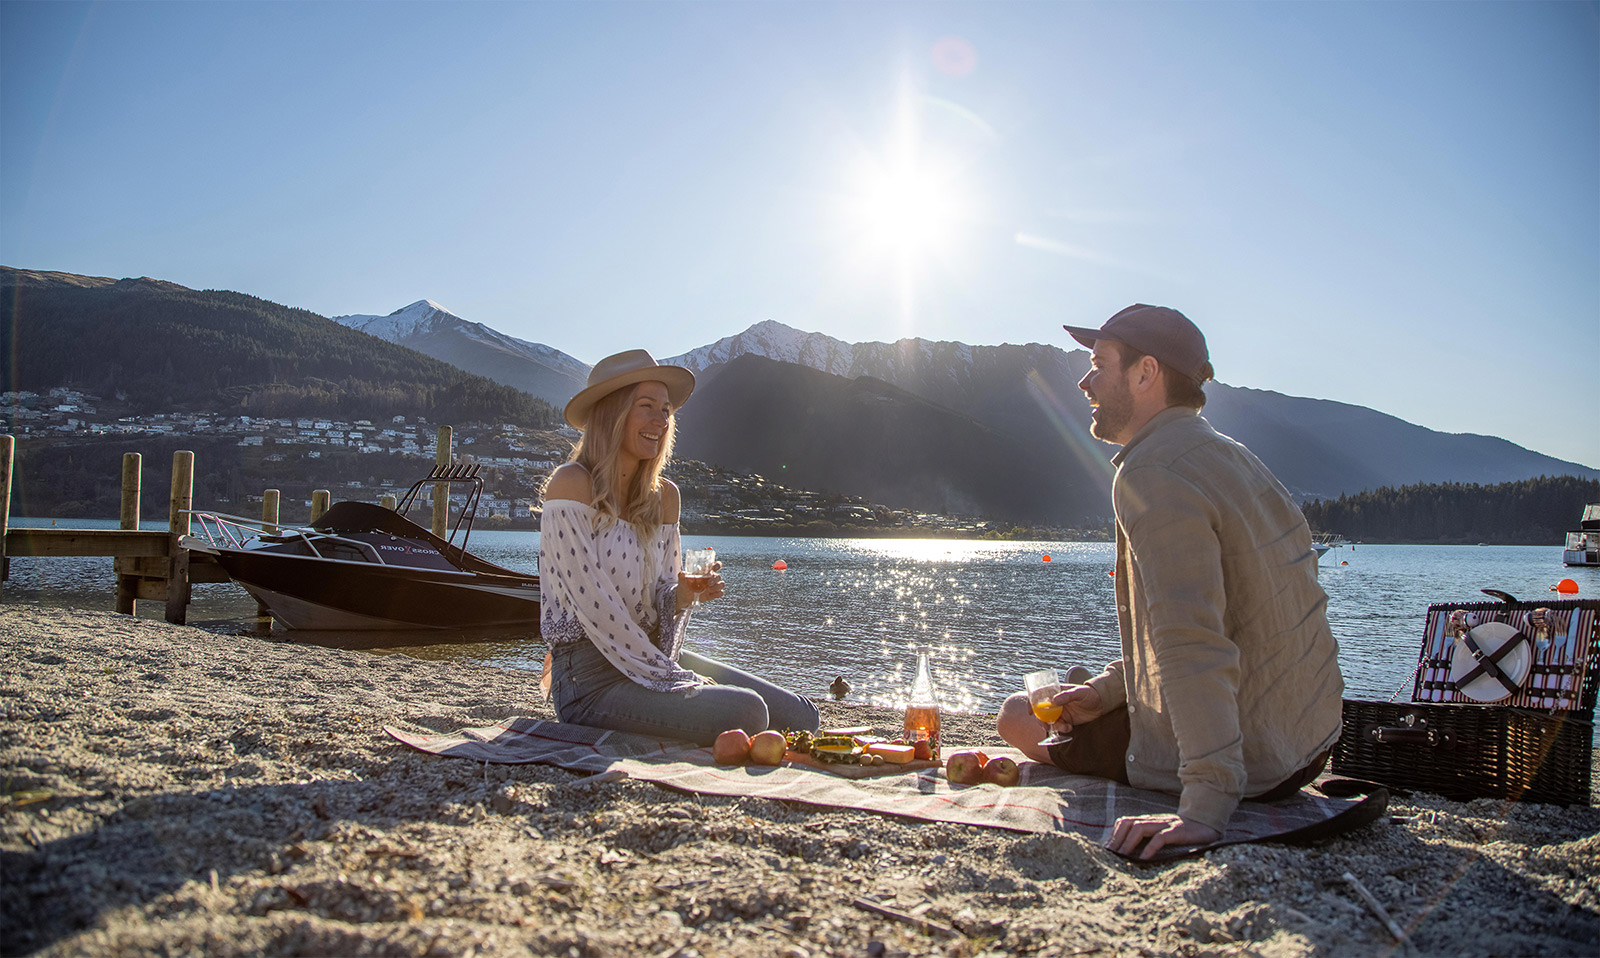 Picnic for a couple on Lake Wakatipu shore